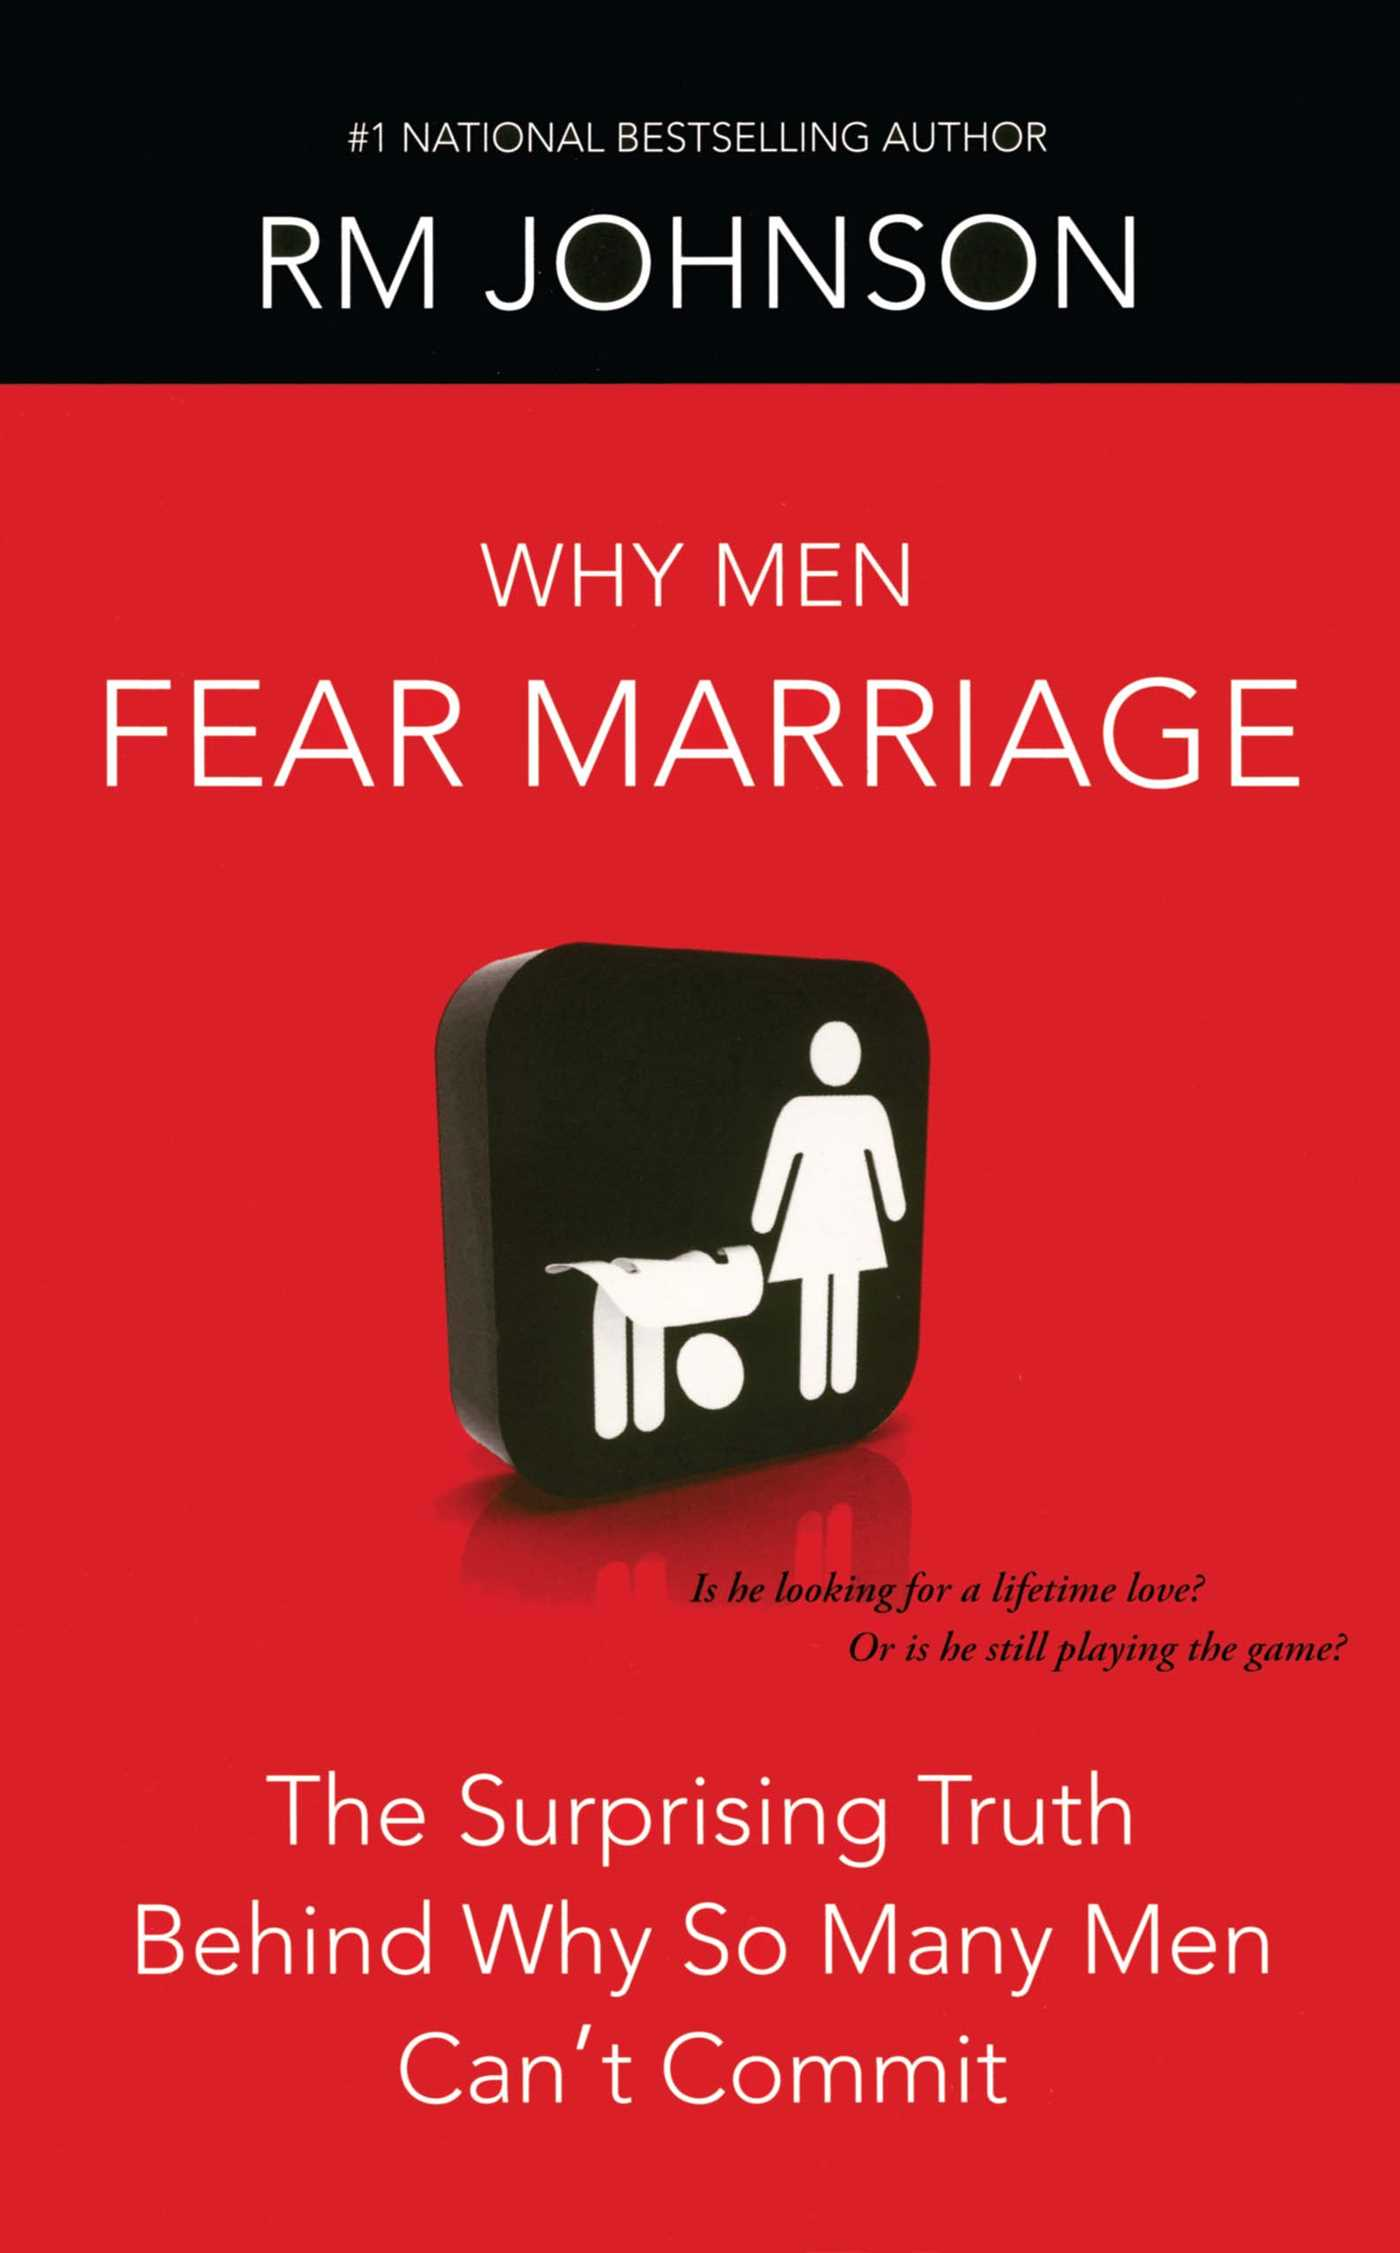 Why men fear marriage 9781439101506 hr